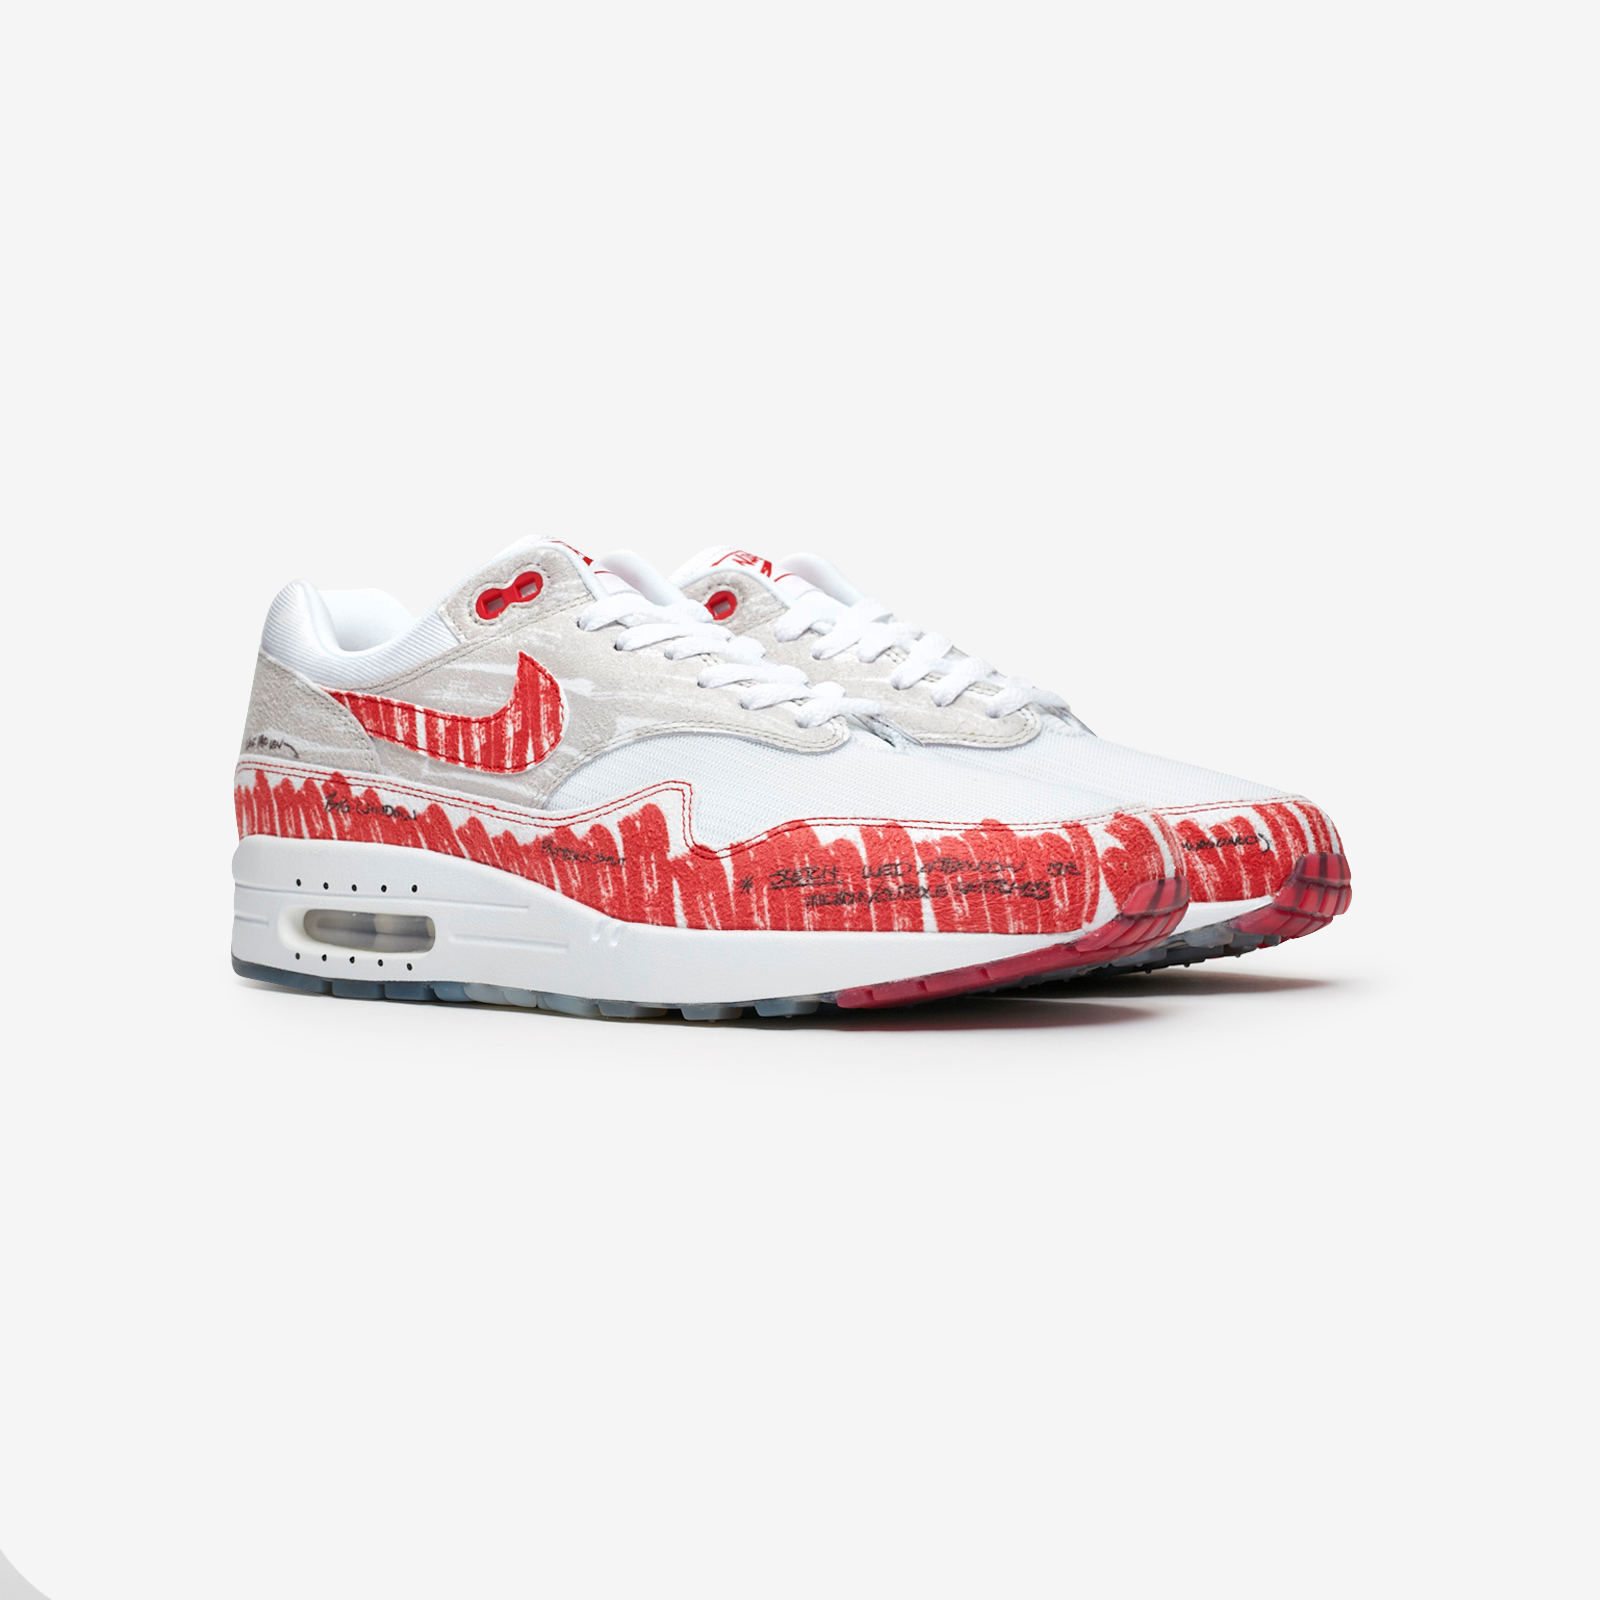 50a95a1f Nike Air Max 1 Sketch To Shelf - Cj4286-101 - Sneakersnstuff | sneakers &  streetwear online since 1999